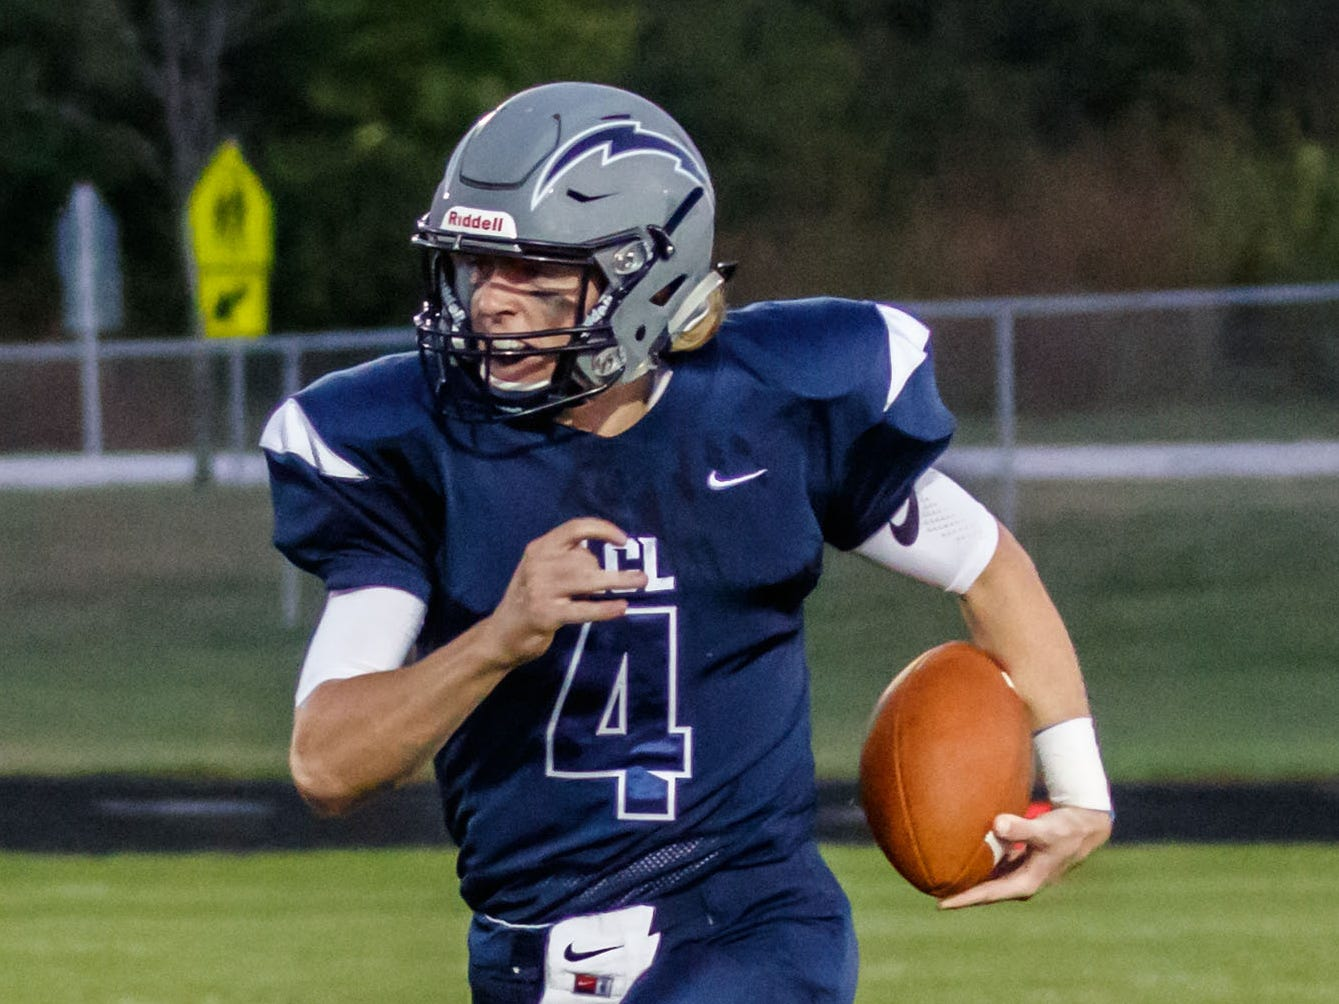 Lake Country Lutheran quarterback Ethan Wilkins (4) races for the corner during the game at home against University School of Milwaukee on Thursday, Sept. 13, 2018.